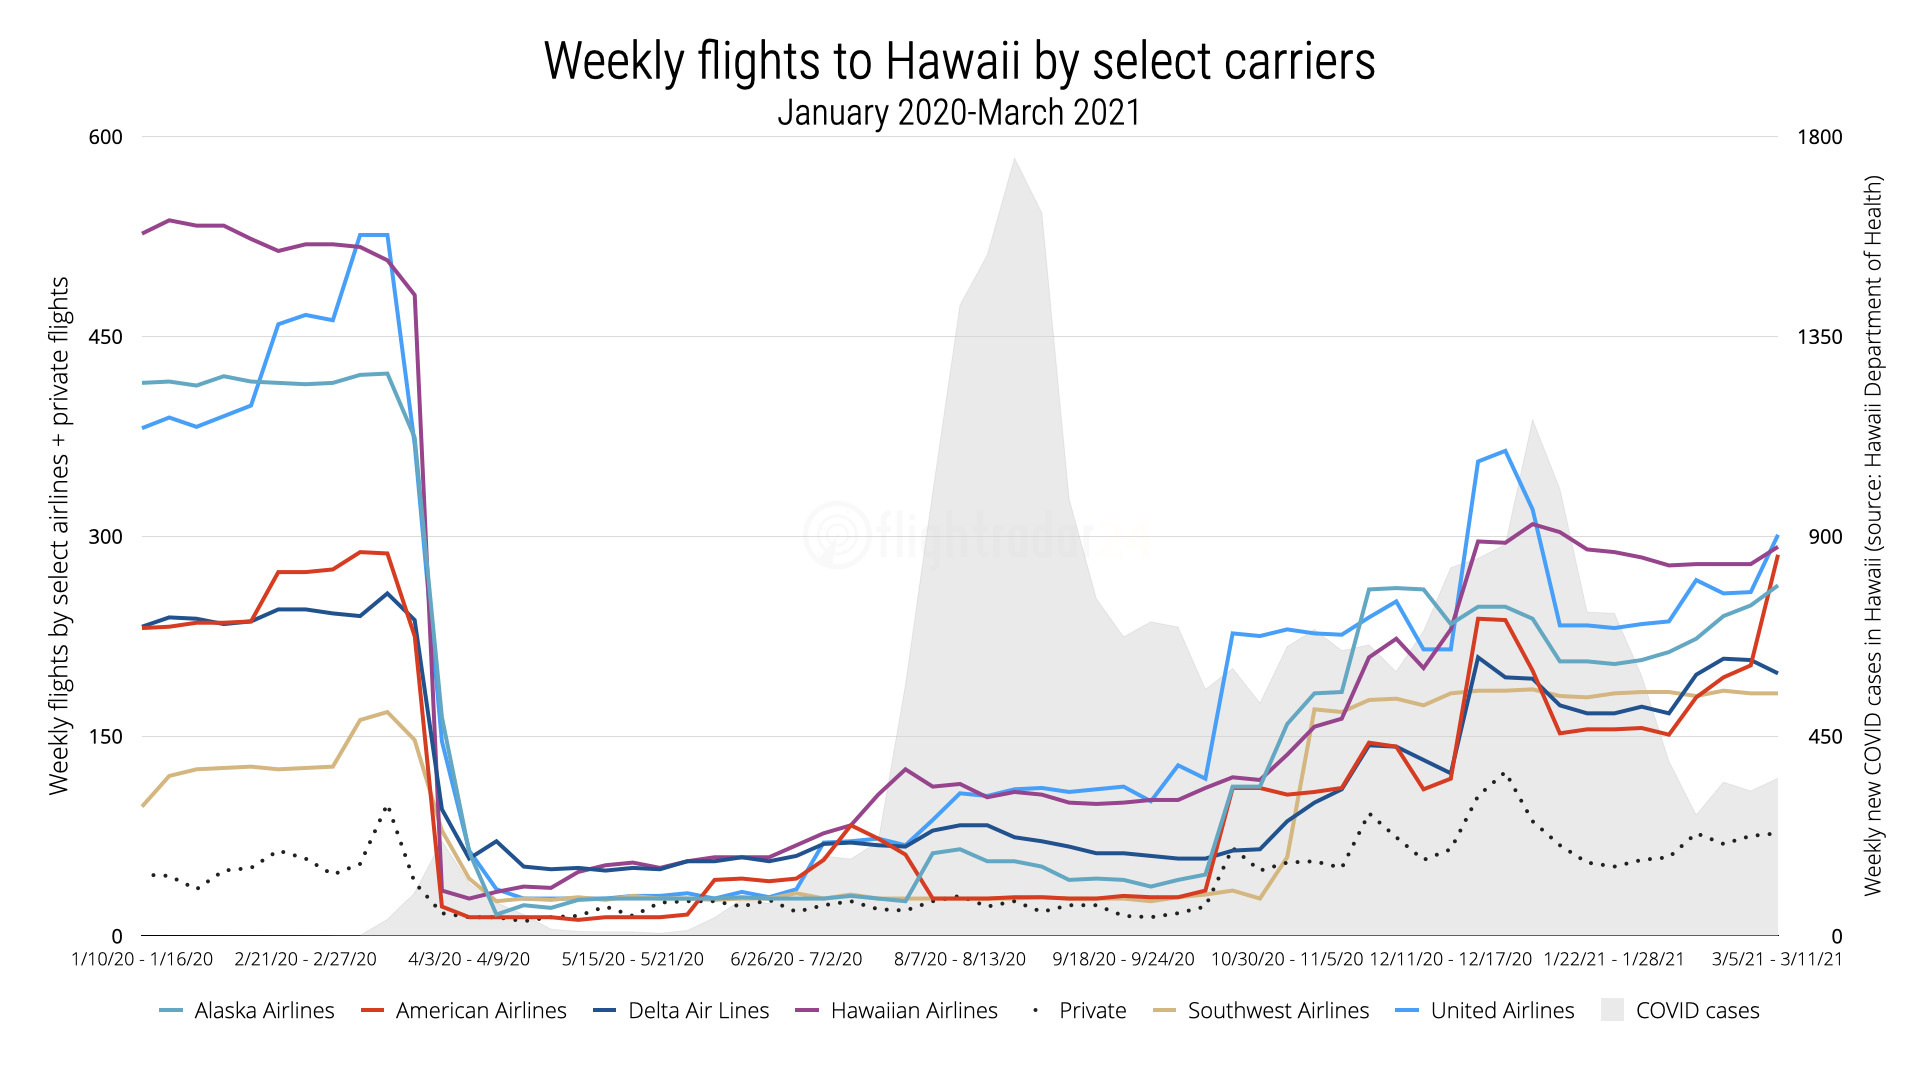 Chart showing weekly flights to Hawaii by select airlines overlaid on new weekly COVID cases in Hawaii